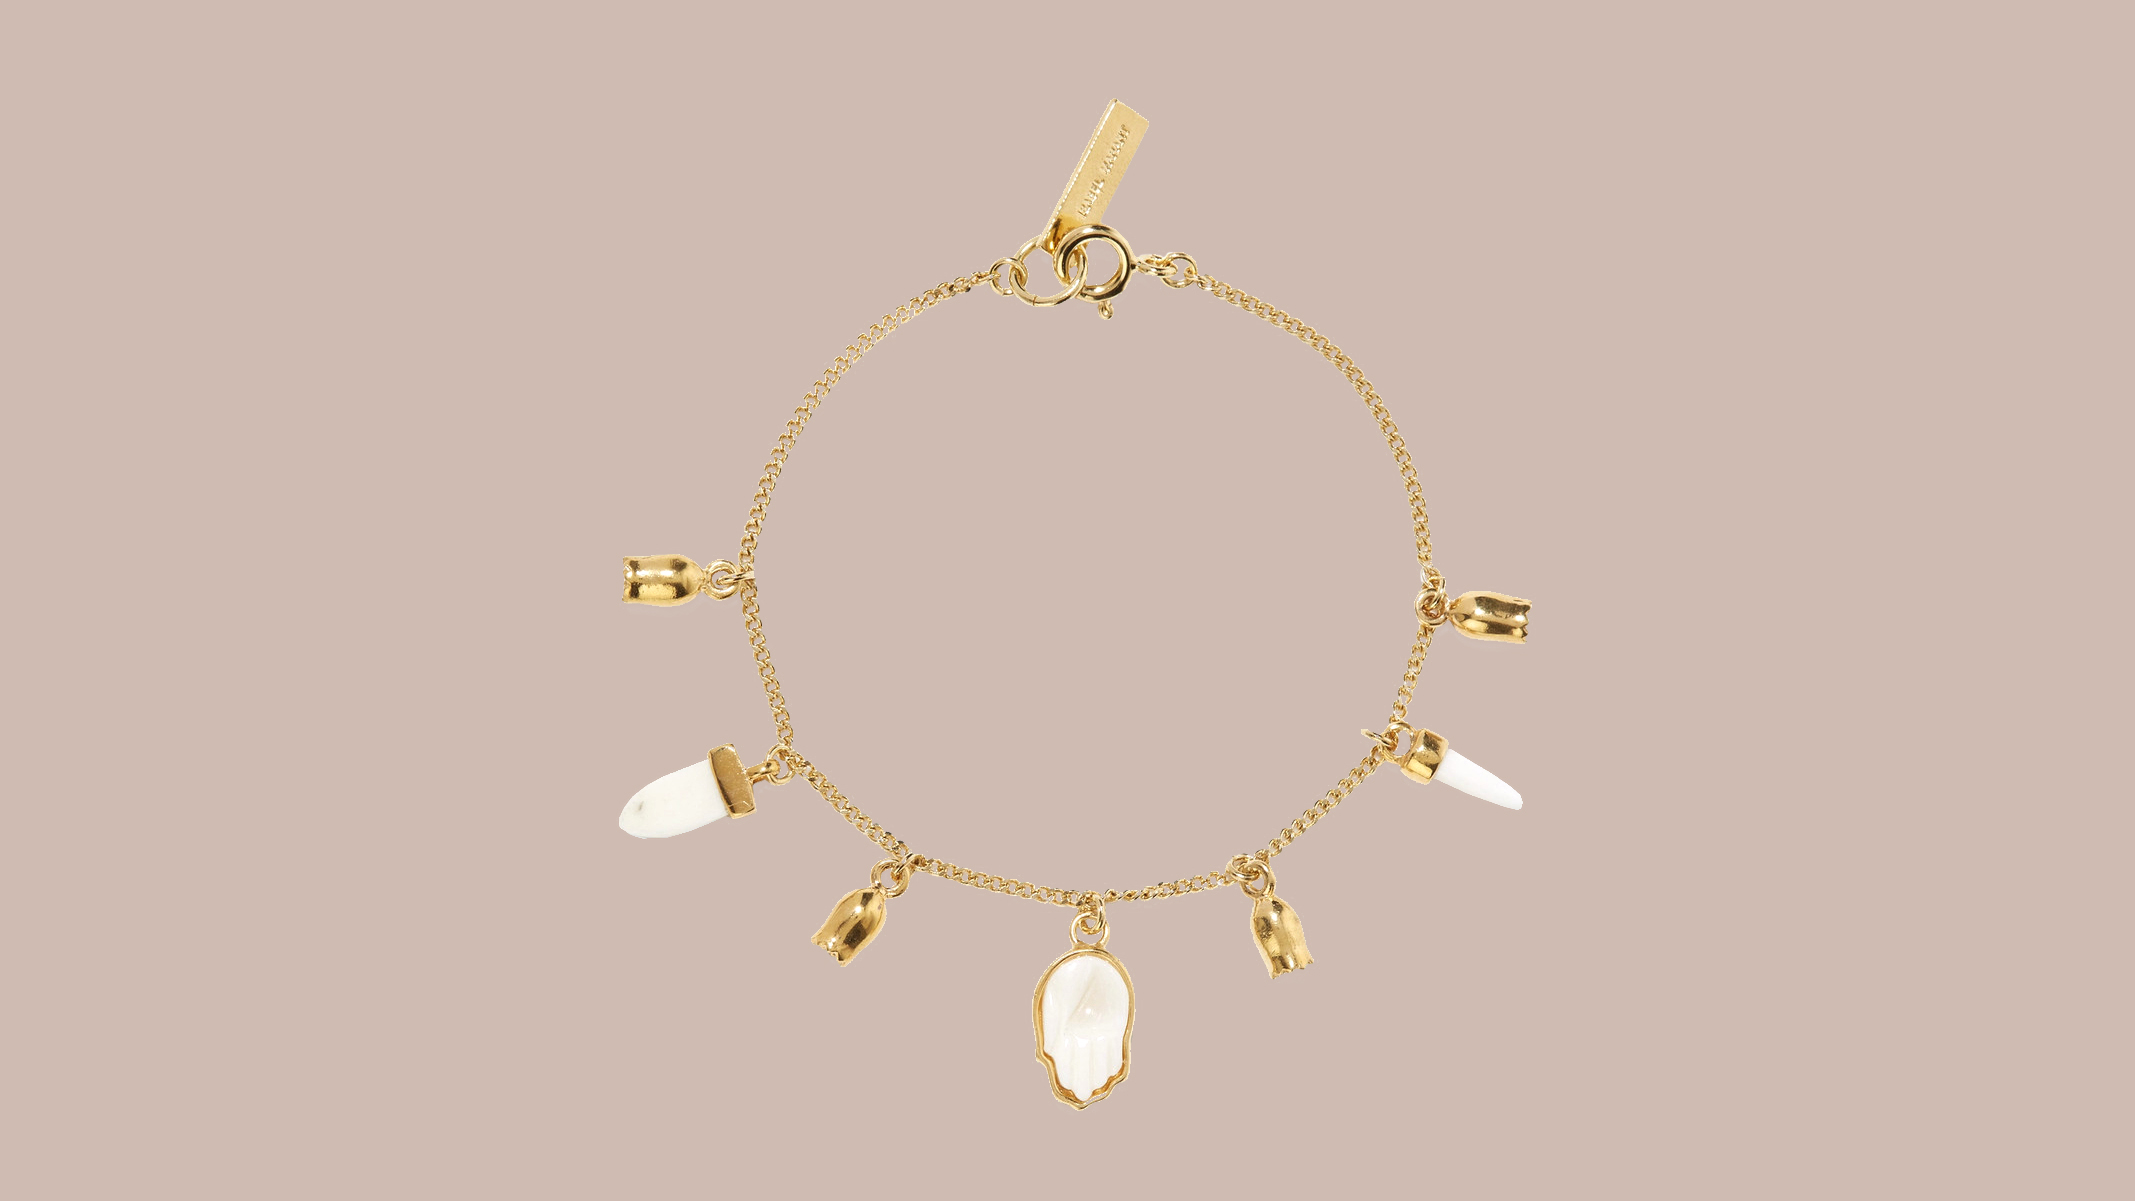 Isabel Marant Gold-Tone, Bone, and Enamel Bracelet